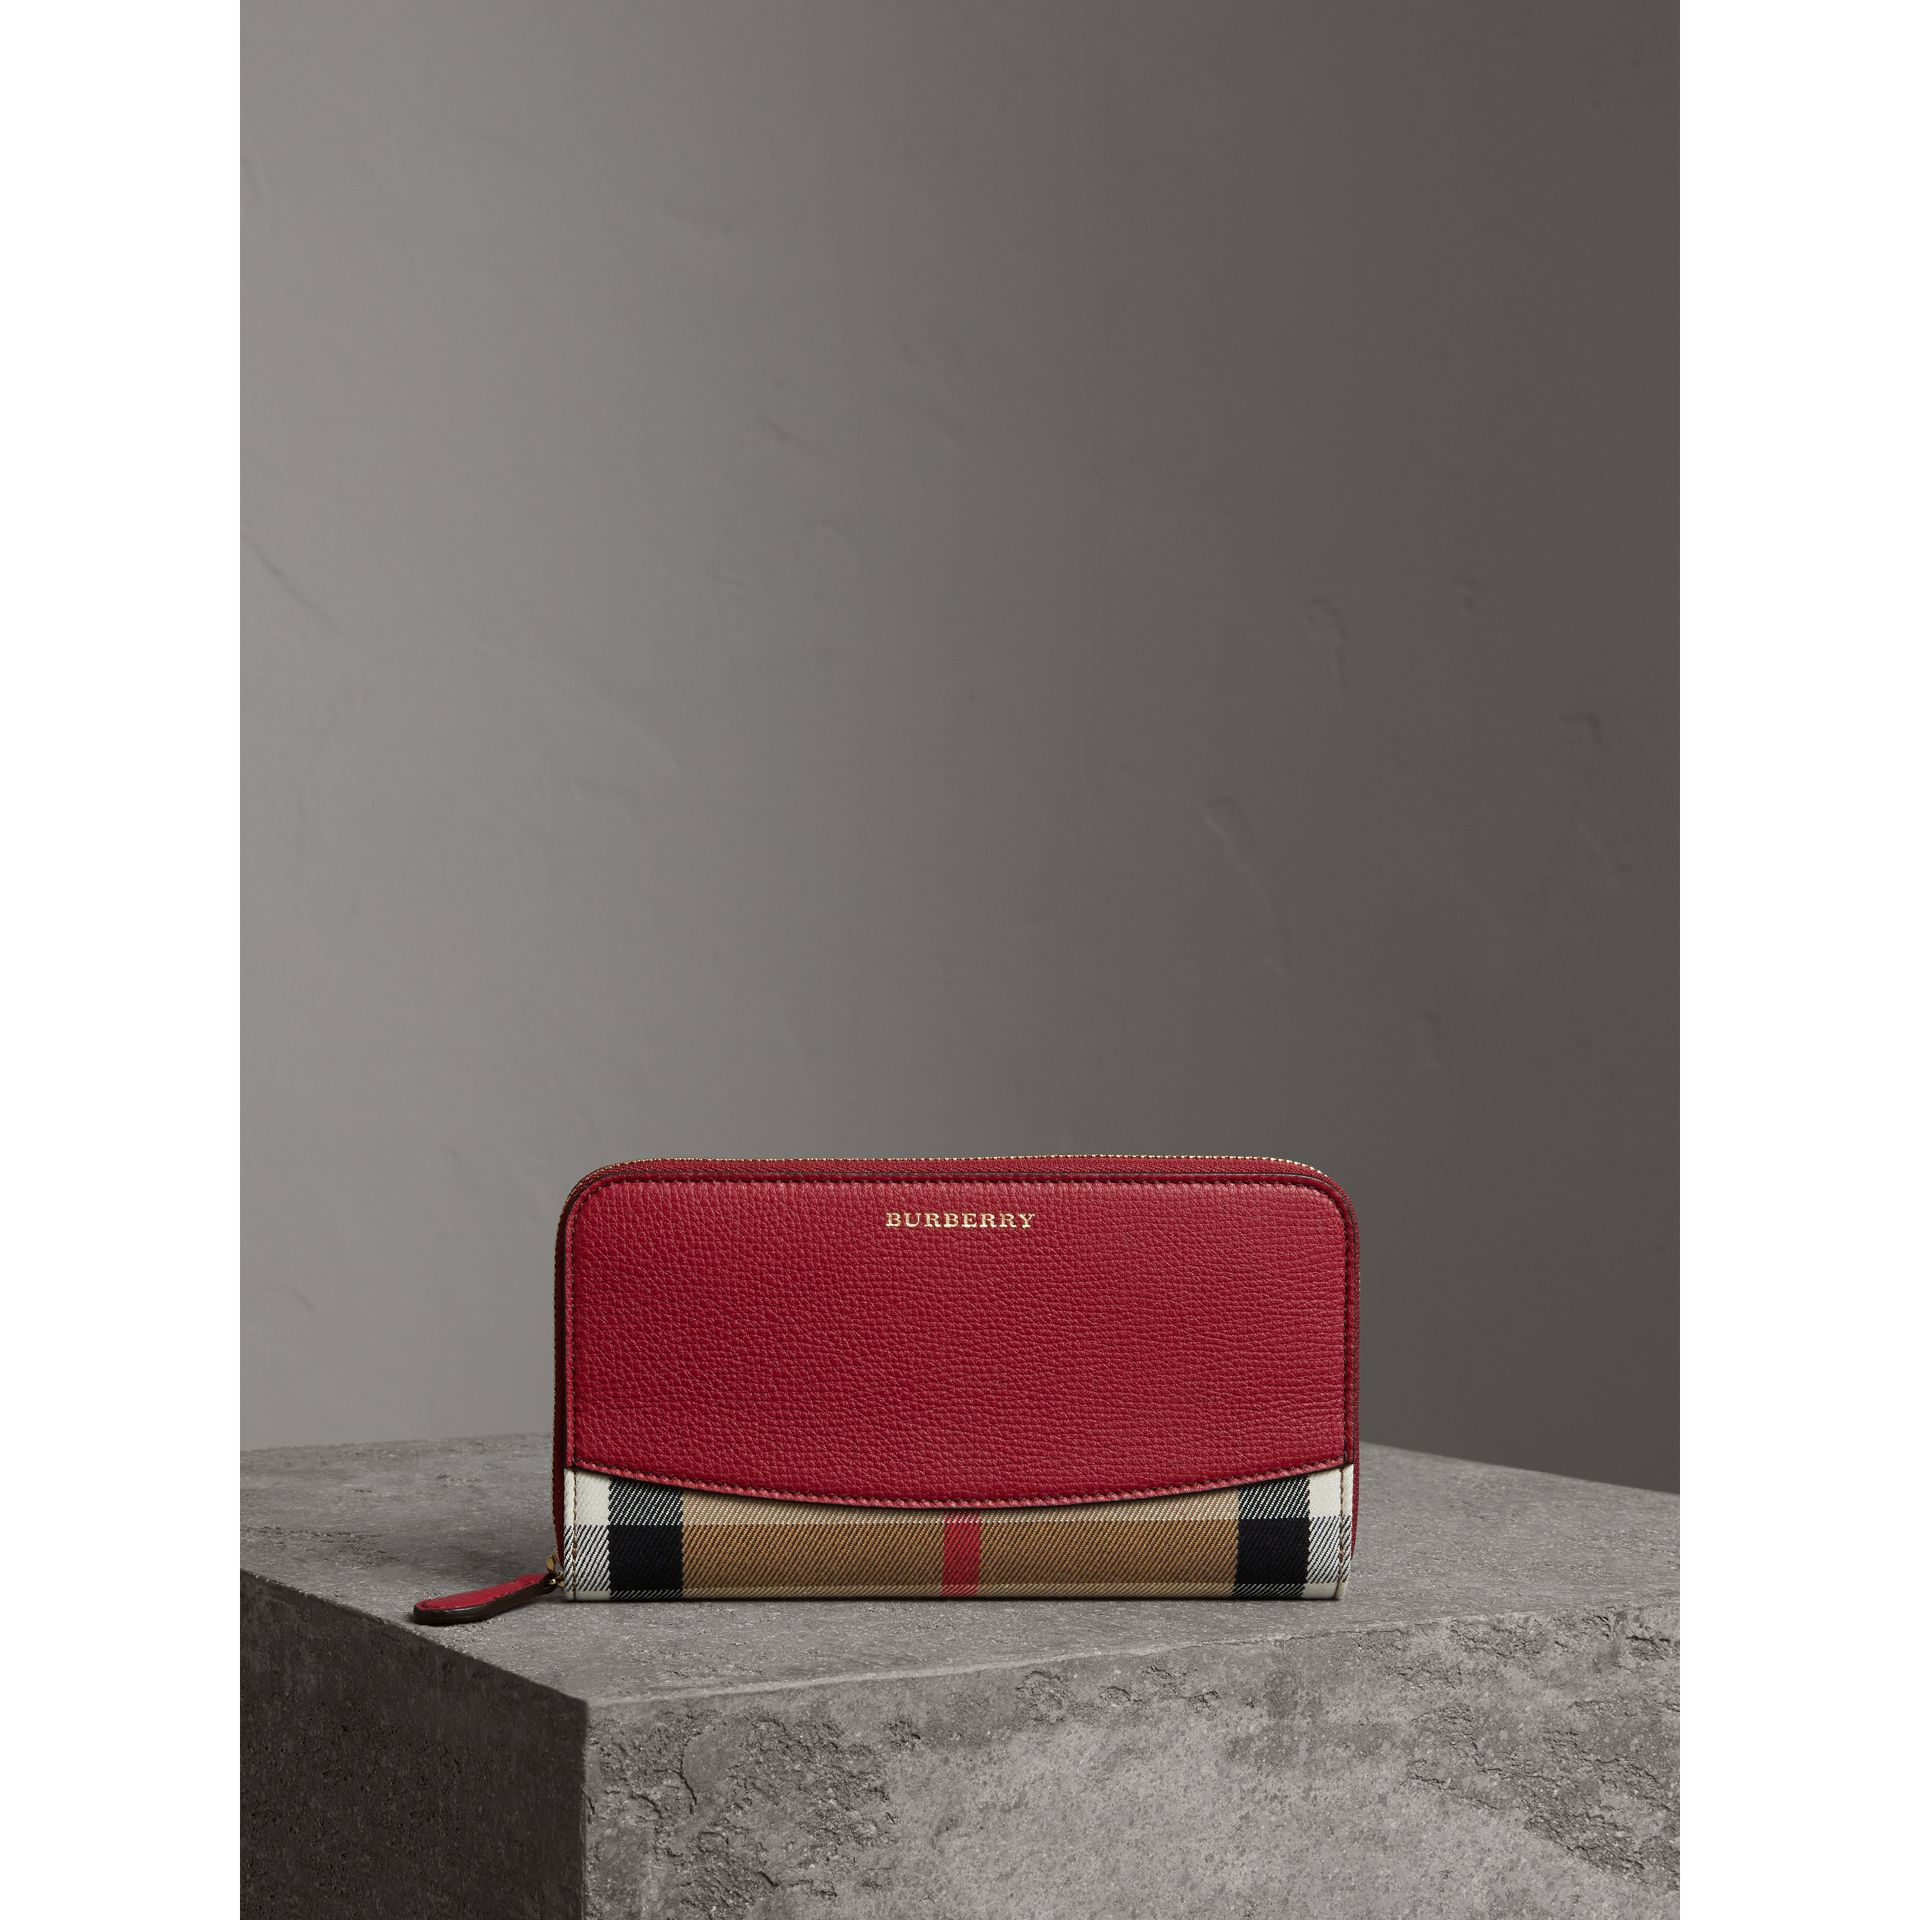 House Check and Leather Ziparound Wallet in Russet Red - Women | Burberry - gallery image 4